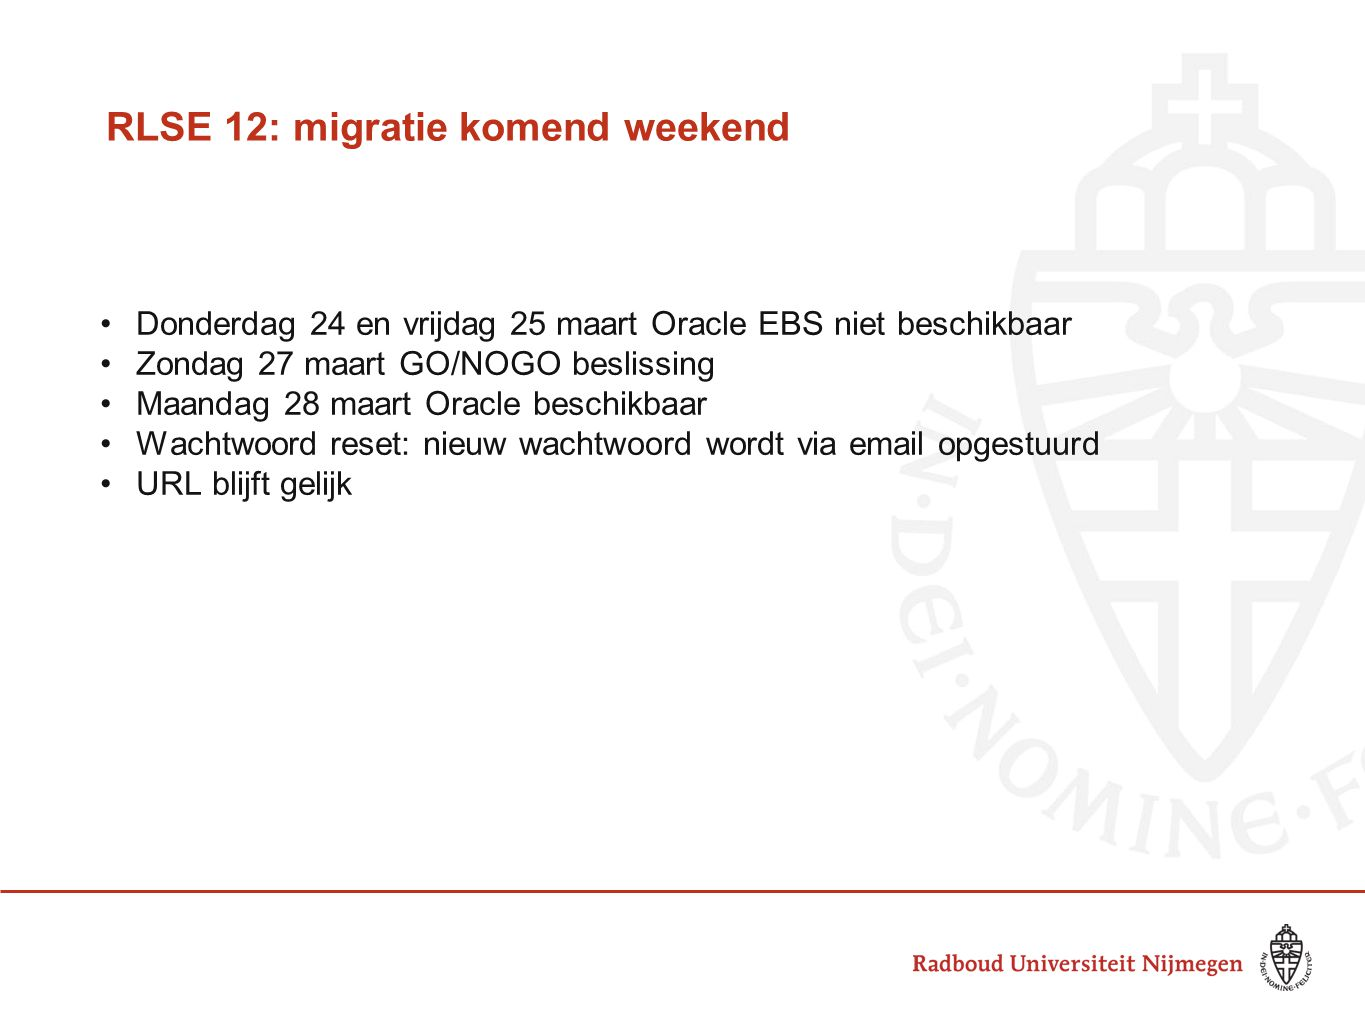 RLSE 12: migratie komend weekend